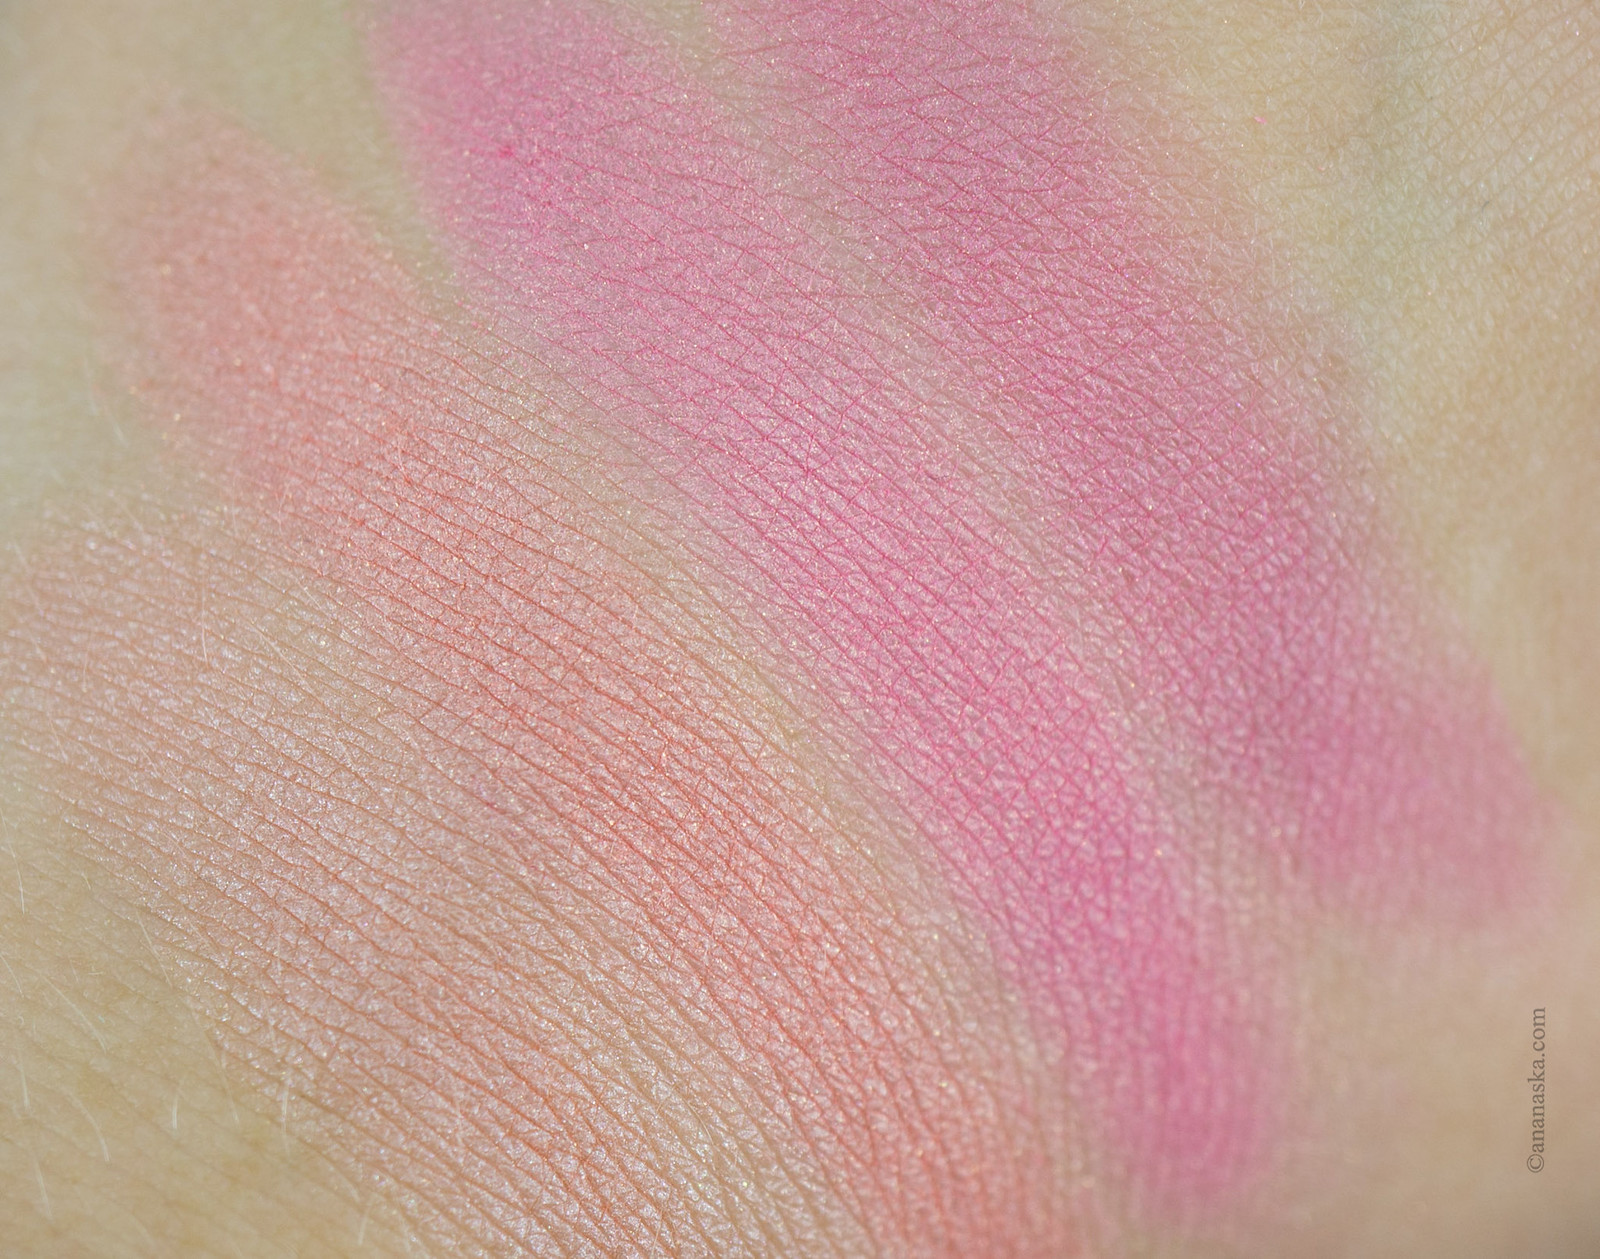 PUPA Like a Doll Luminys Blush: 200, 300, 302, 102